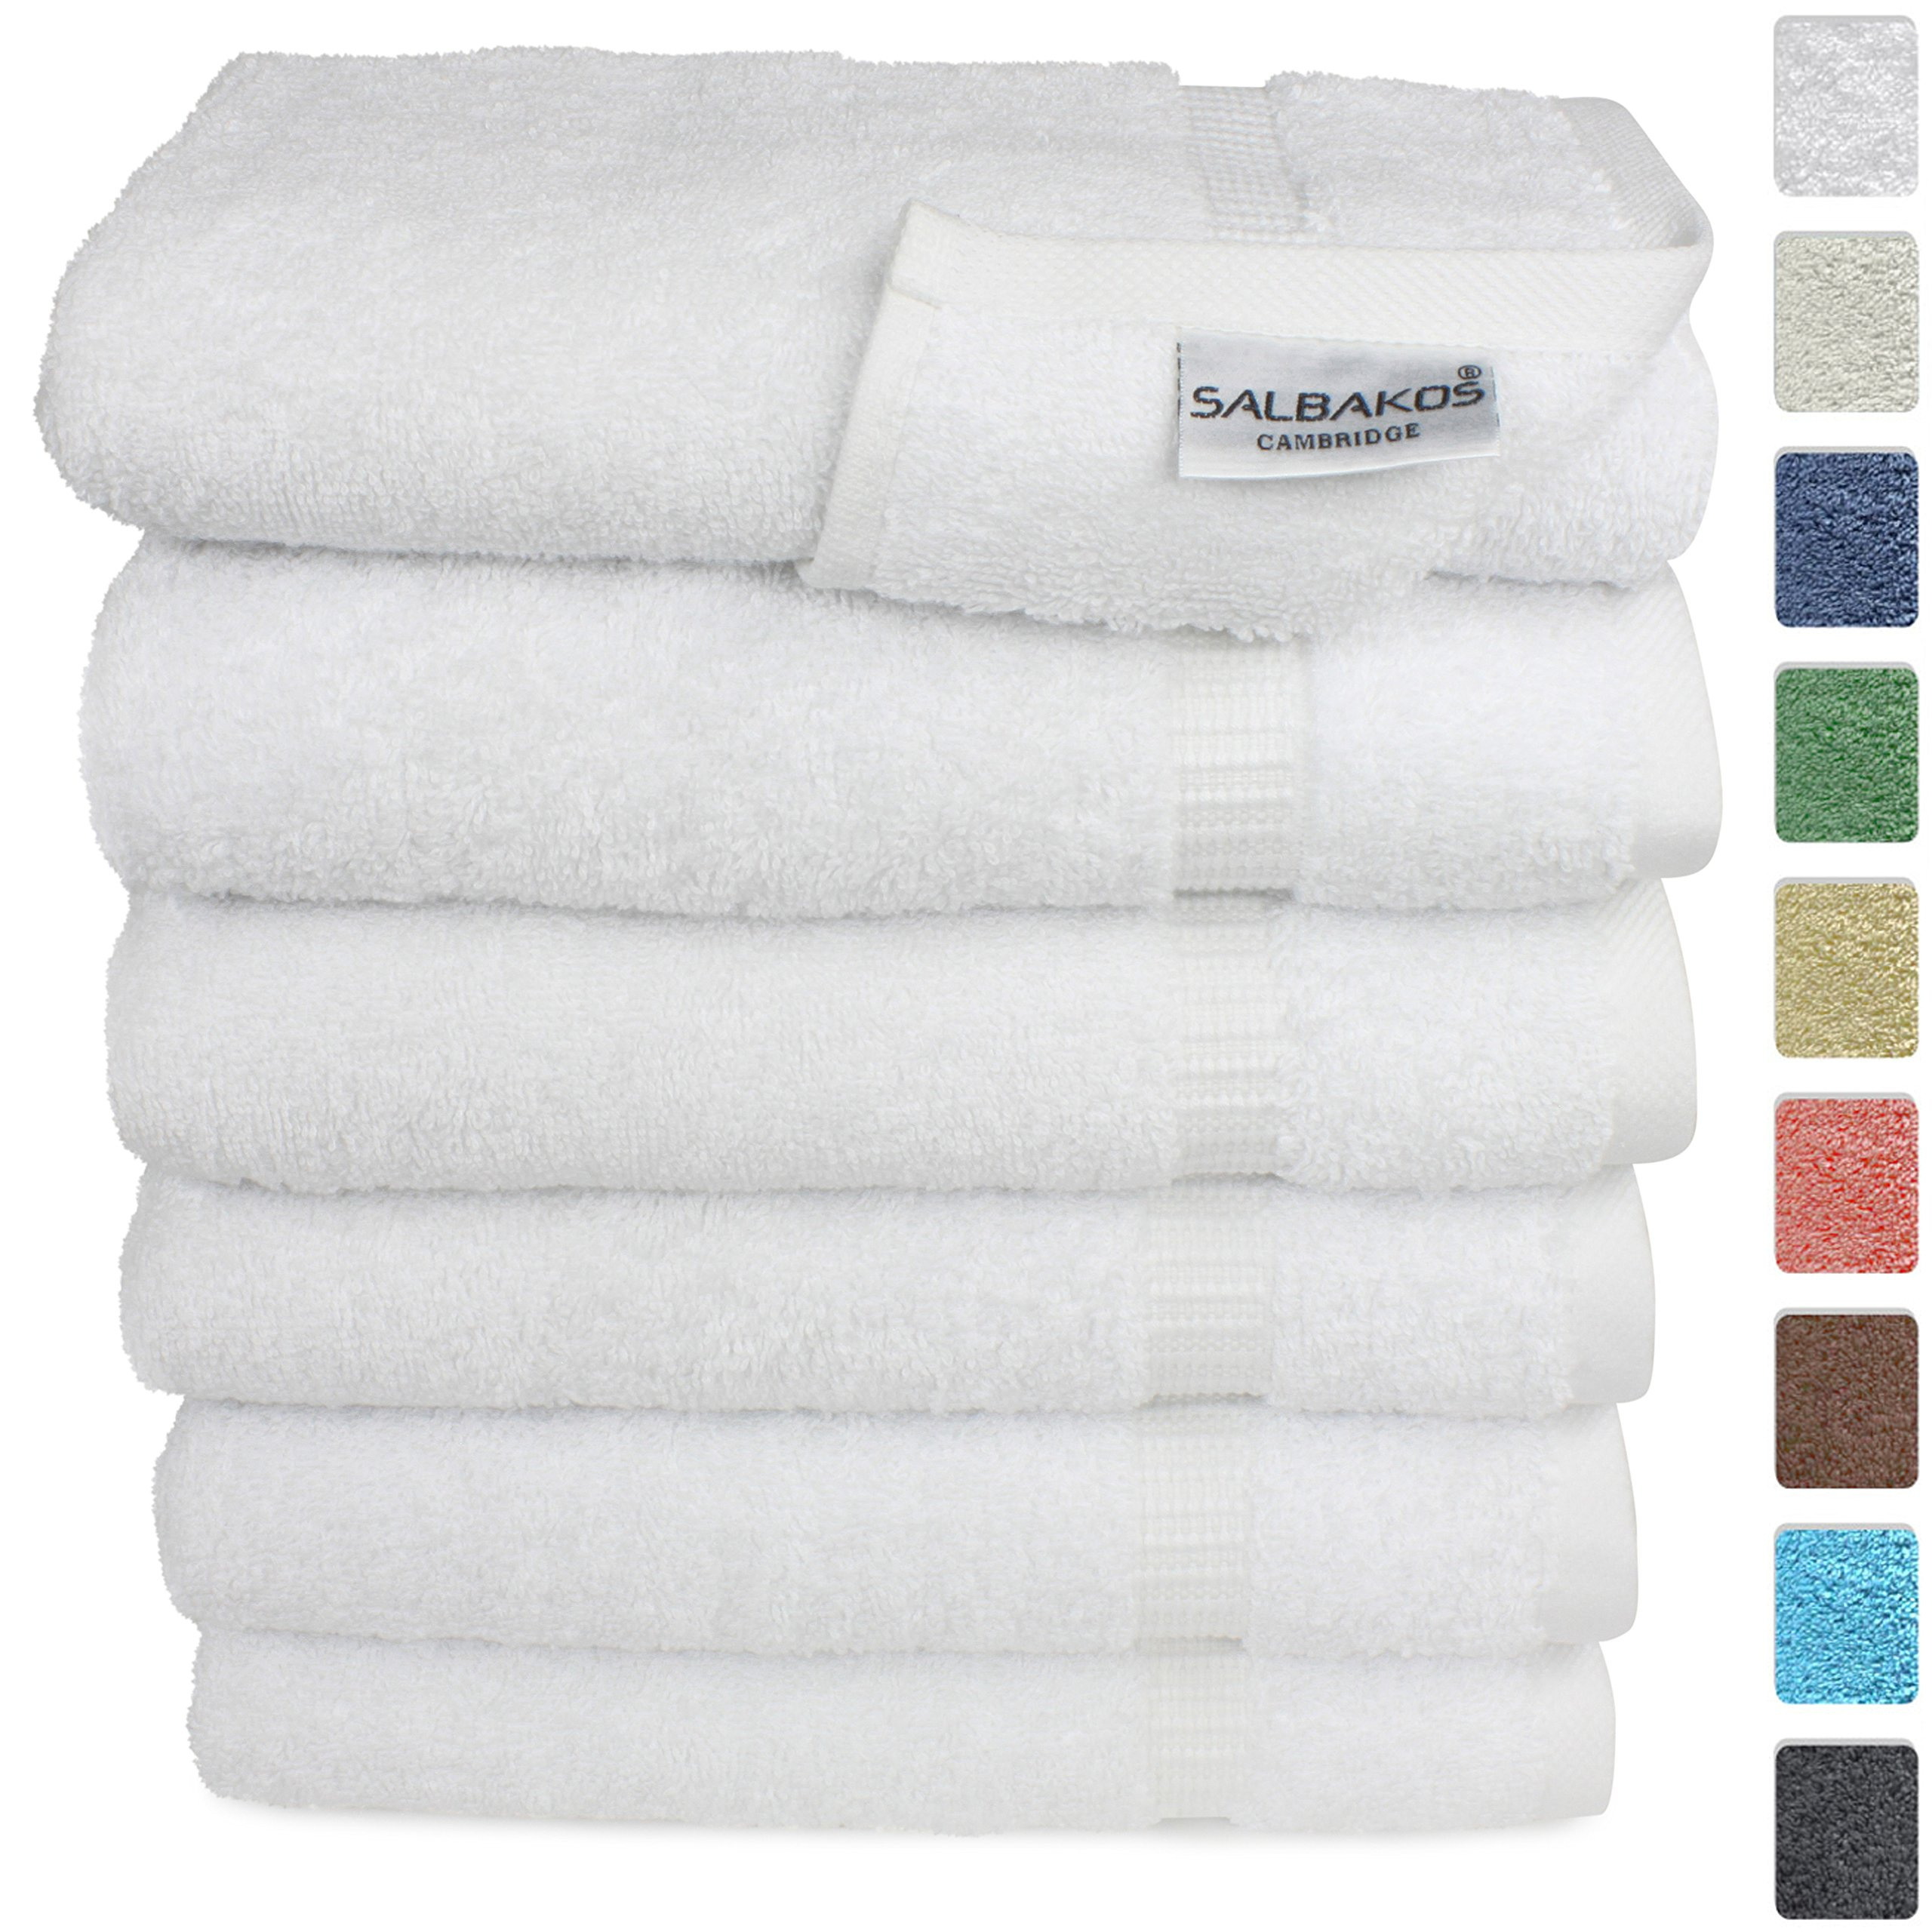 SALBAKOS Hand Towels for Bathroom - White Cotton - 6 Bulk Pack Turkish Cotton - Luxury Hotel & Spa Quality - 700gsm OEKO-TEX Organic + Eco-Friendly (White) by SALBAKOS